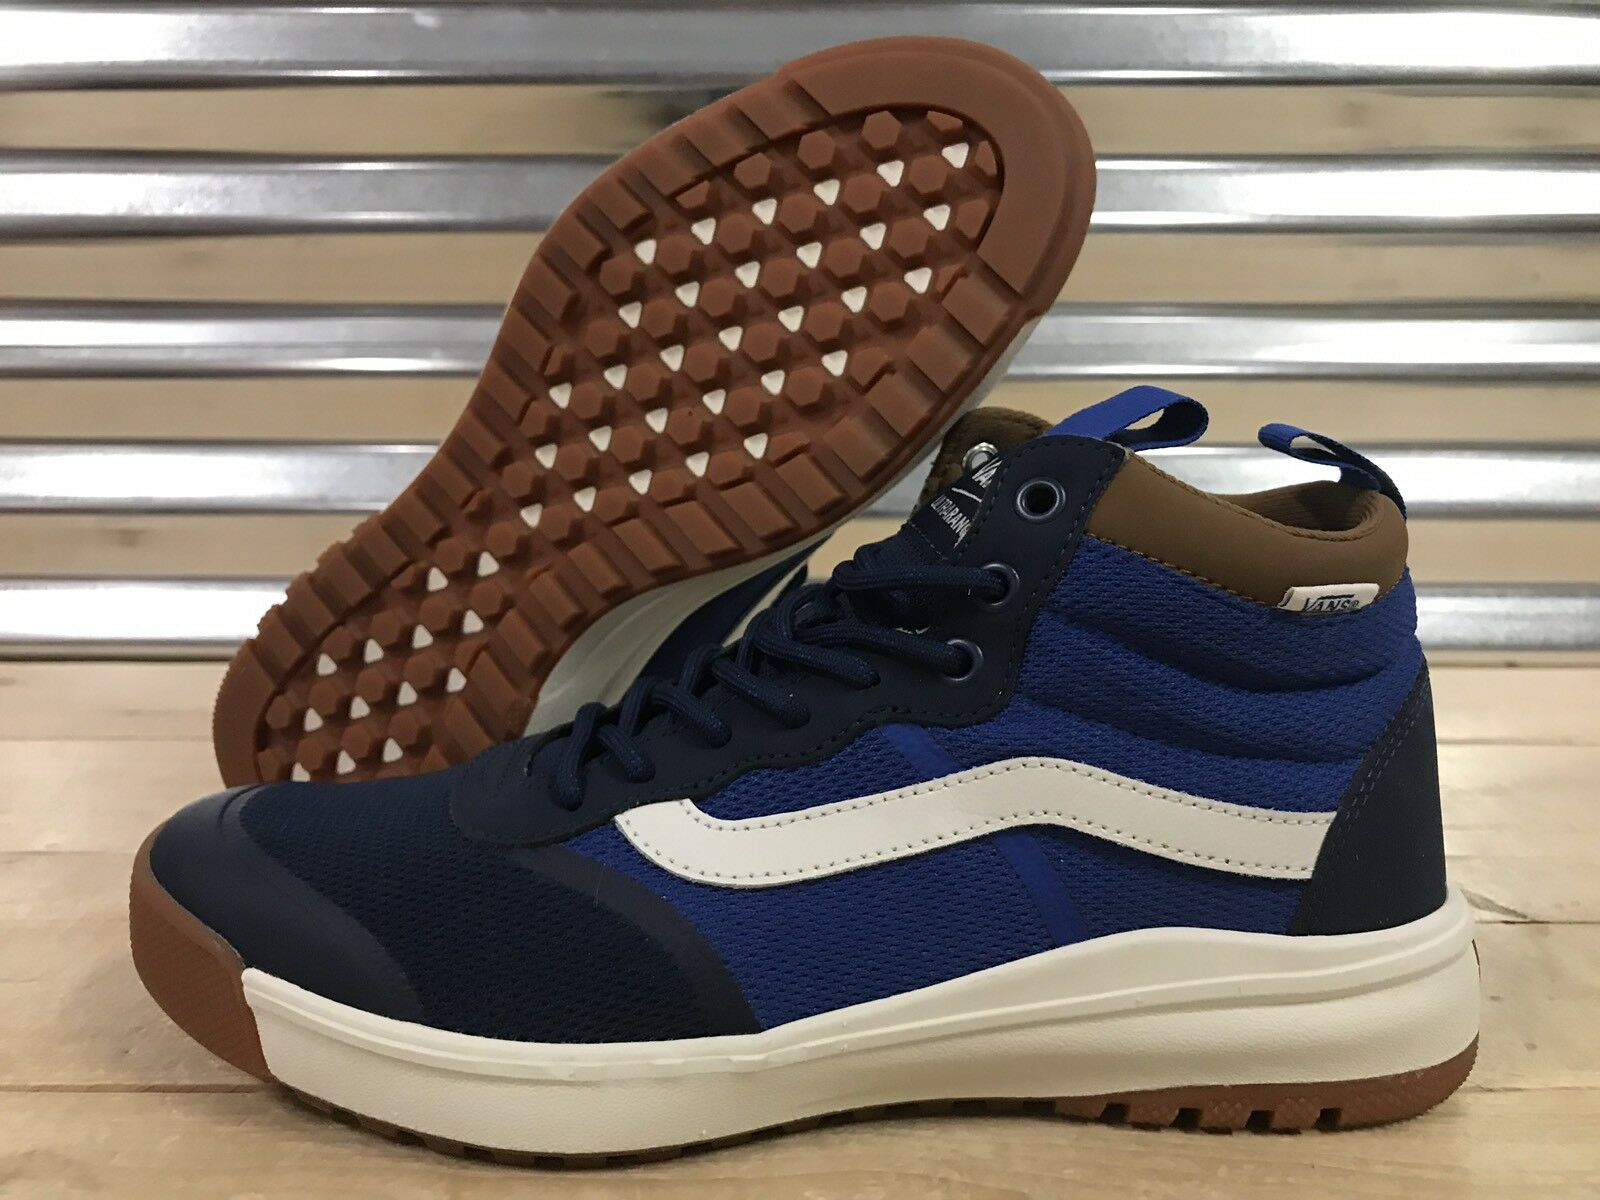 Vans UltraRange Hi DL MTE shoes Dress bluee Navy Brown Mens SZ 9 ( VN0A3WMFQ3V )